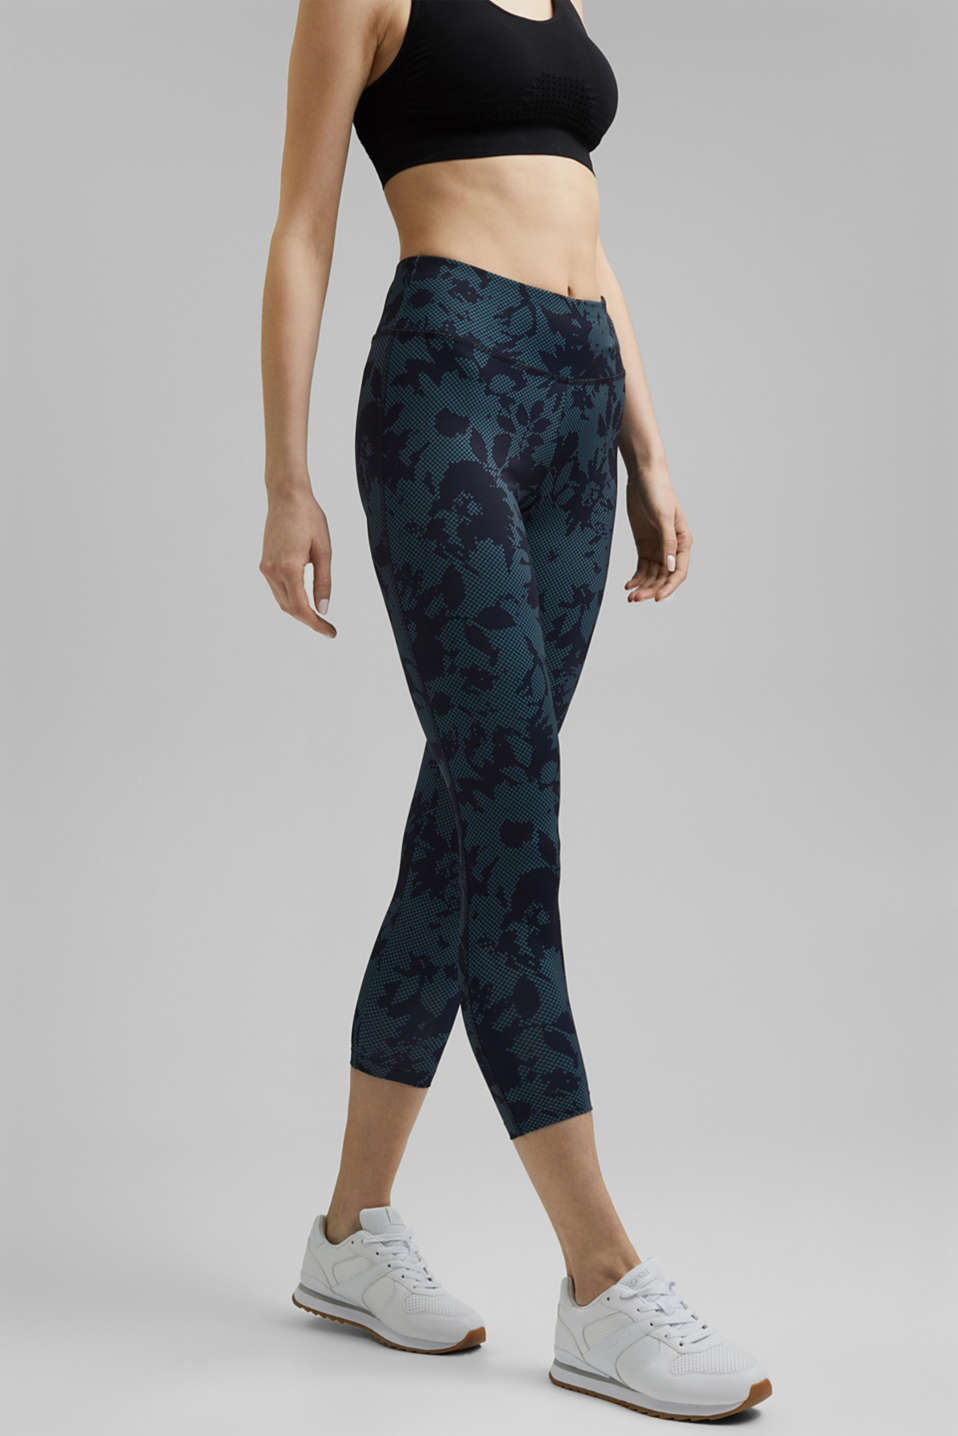 Esprit - Recycled: high-performance leggings with a print, E-DRY